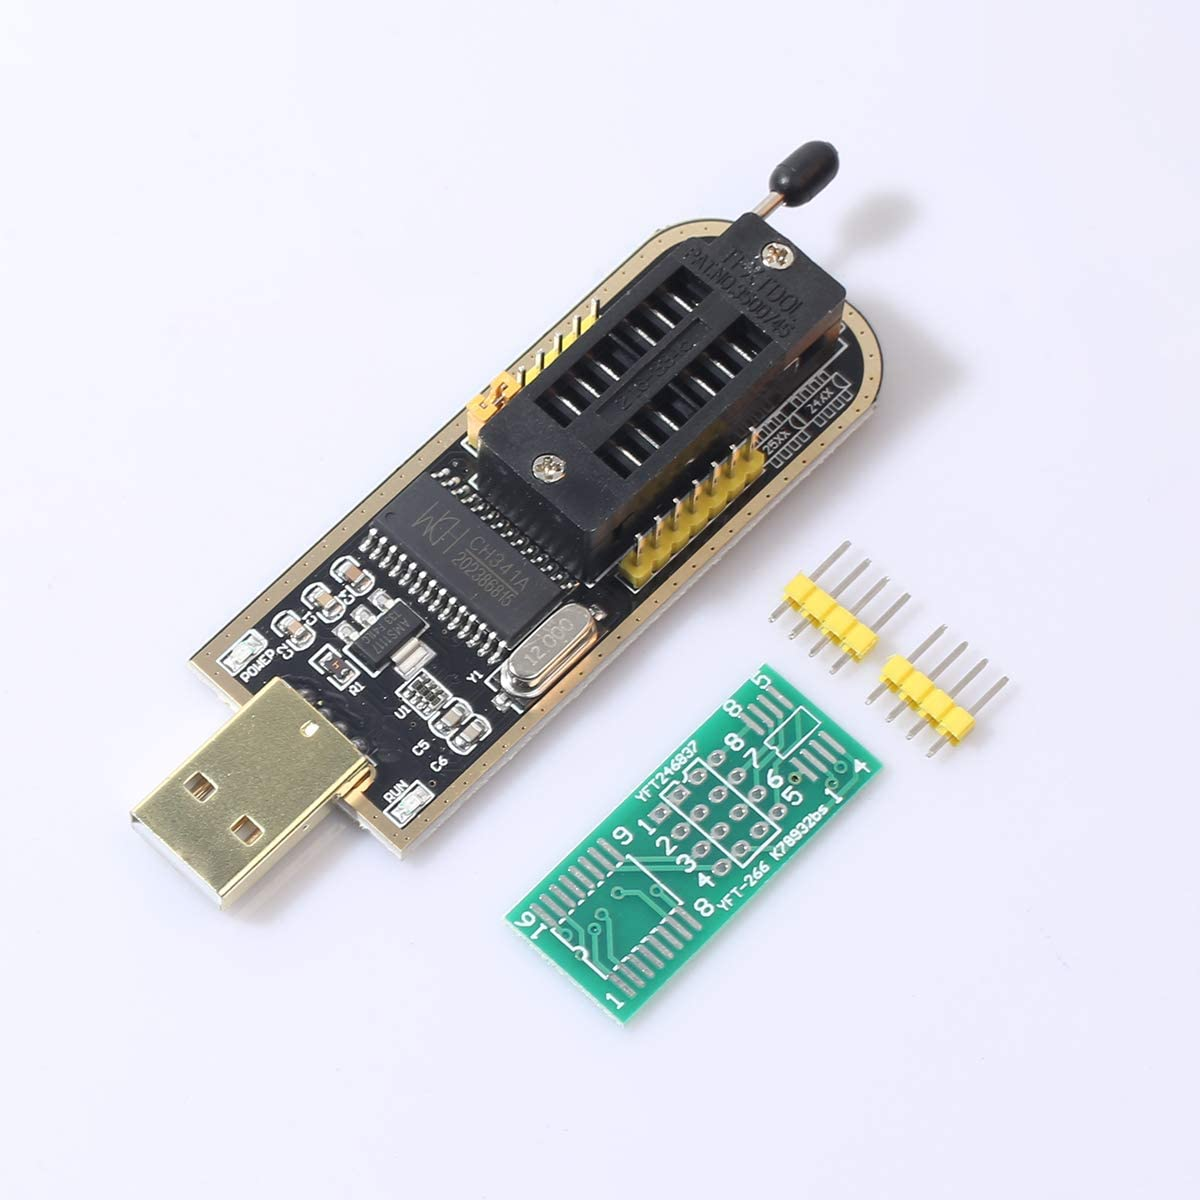 Amazon.com: USB Programmer Module CH341A Series Burner Chip 24 EEPROM BIOS  LCD Writer 25 SPI Flash USB to TTL 5V-3.3V: Computers & Accessories